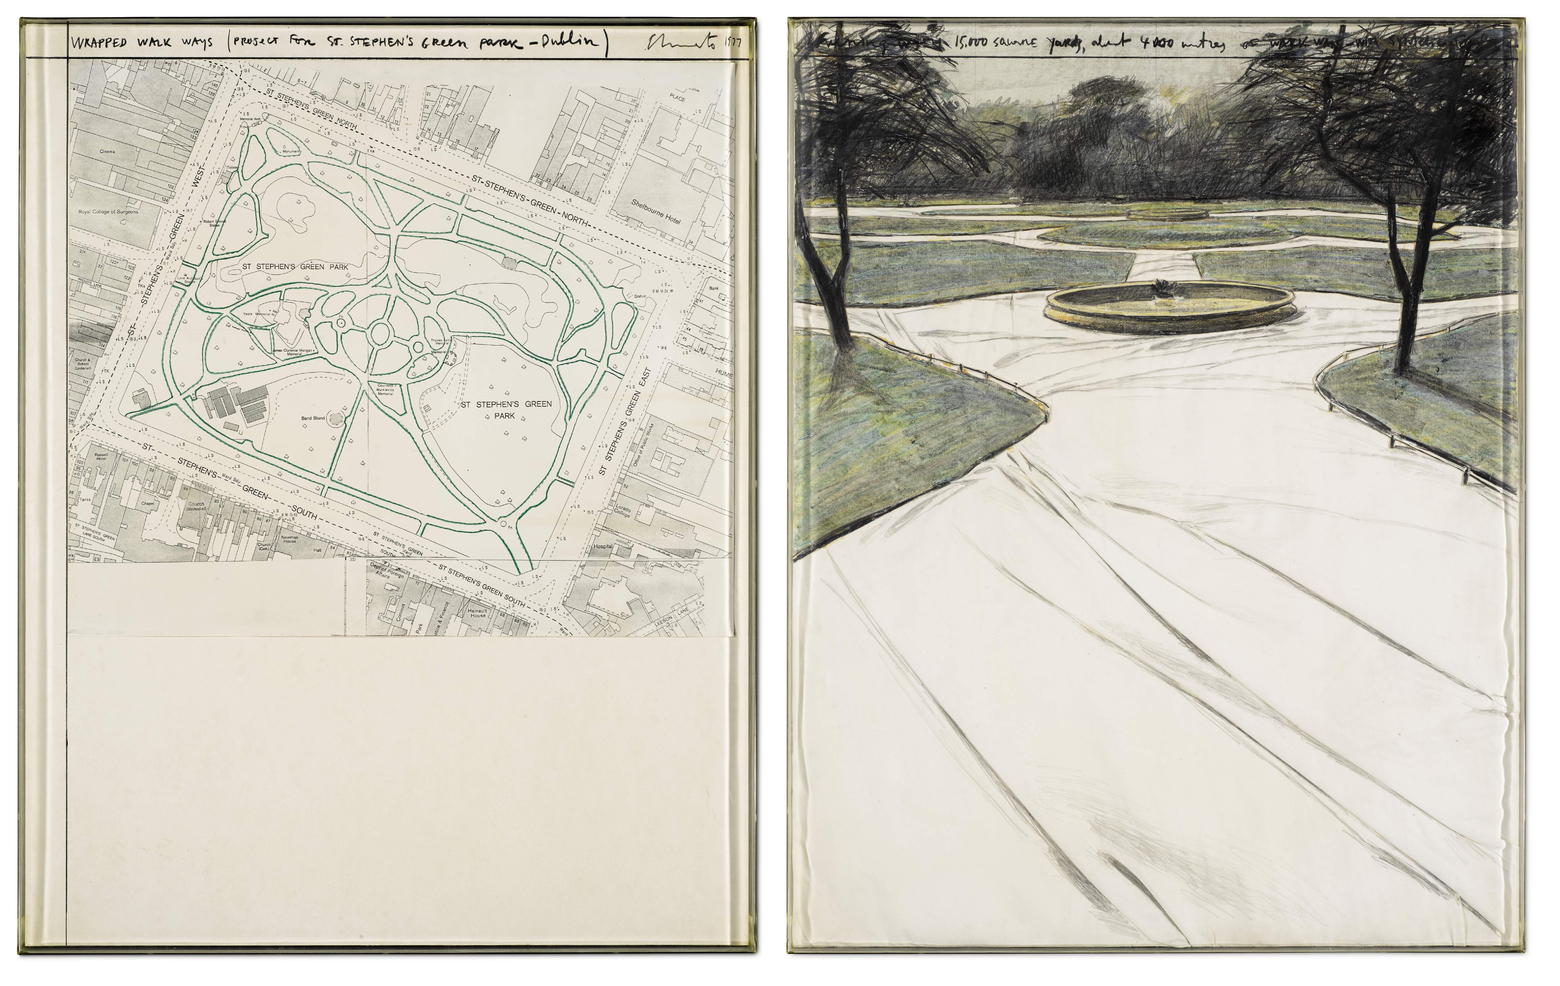 Wrapped Walk Ways (Project for St. Stephen's Green Park, Dublin) by Christo